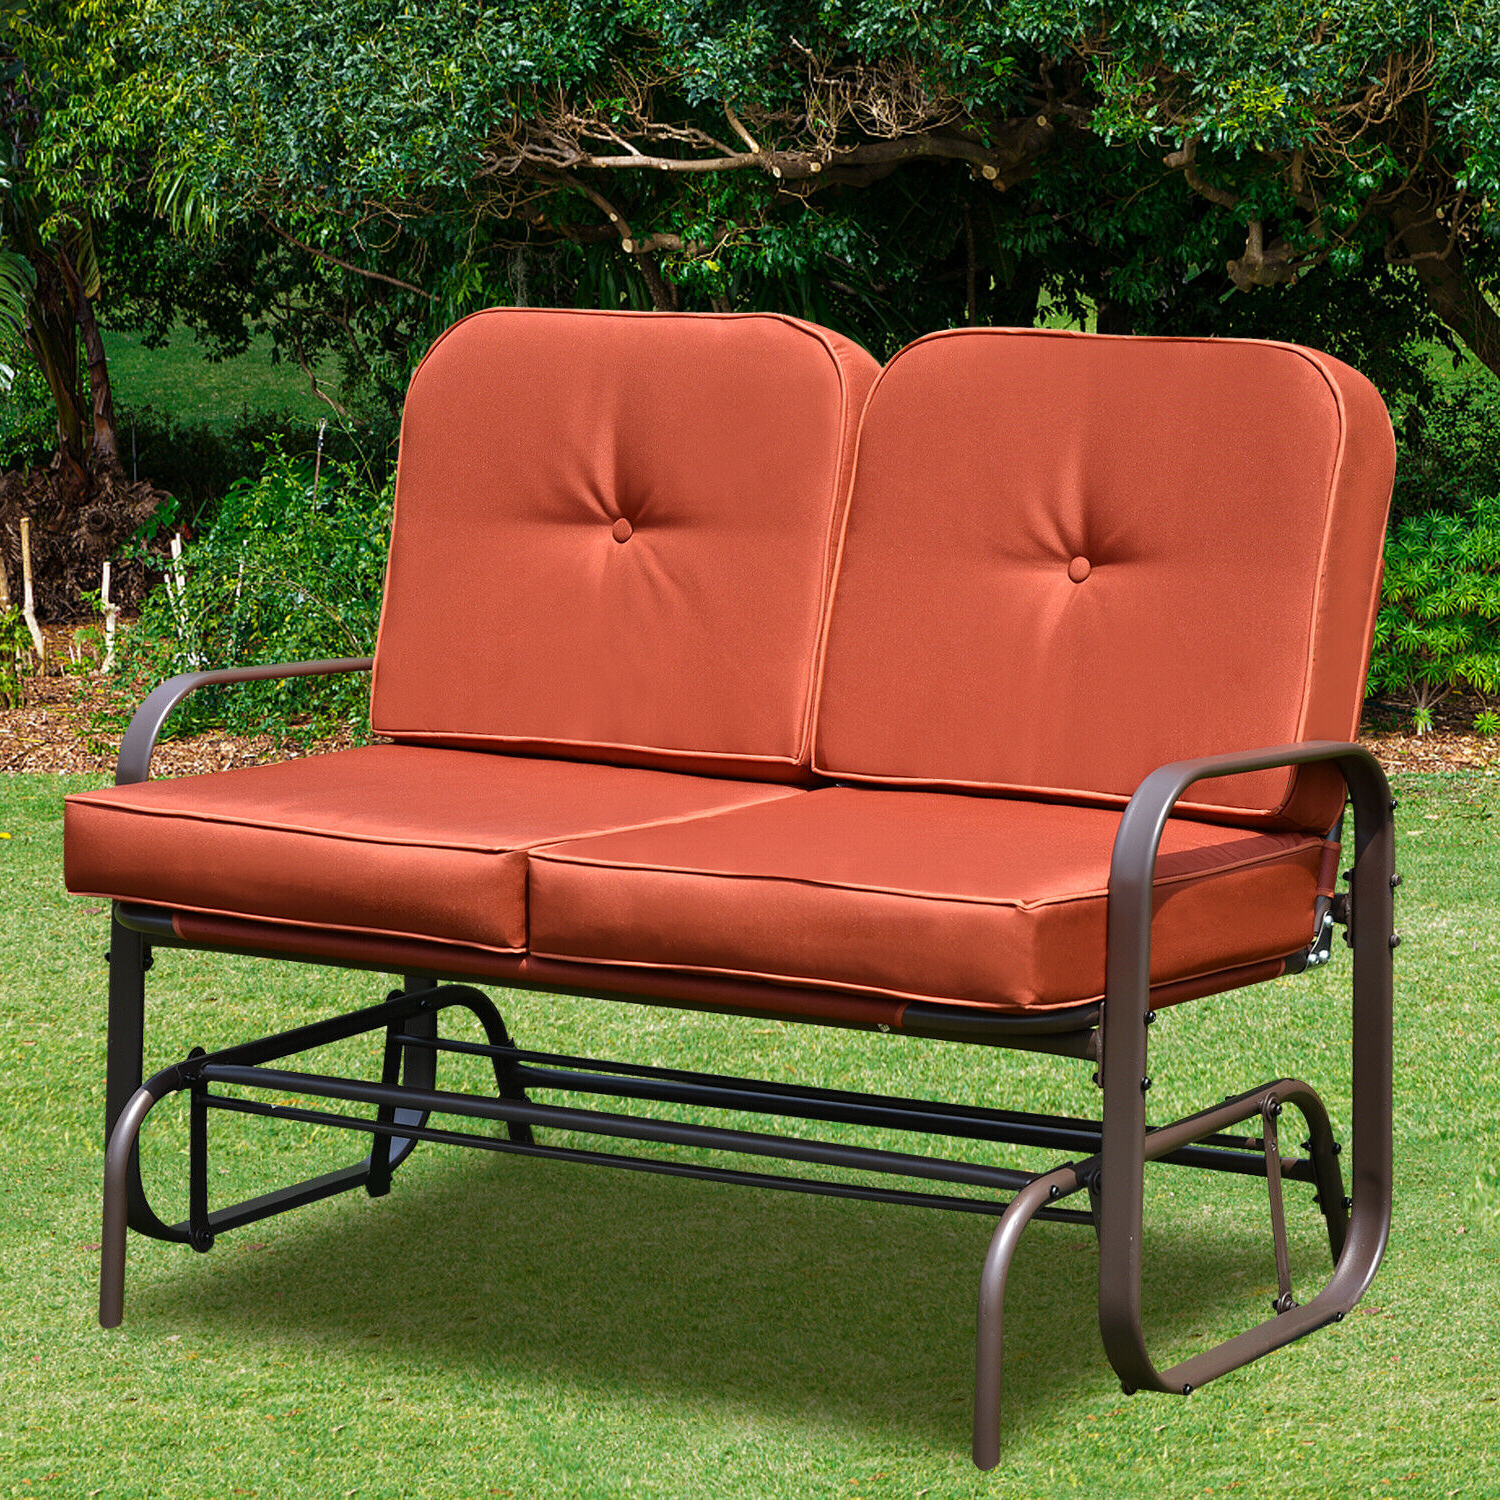 Loveseat Glider Benches With Cushions With Regard To Best And Newest Patio Glider Bench Chair 2 Person Rocker Loveseat Outdoor Furniture W/ Cushions (View 22 of 30)